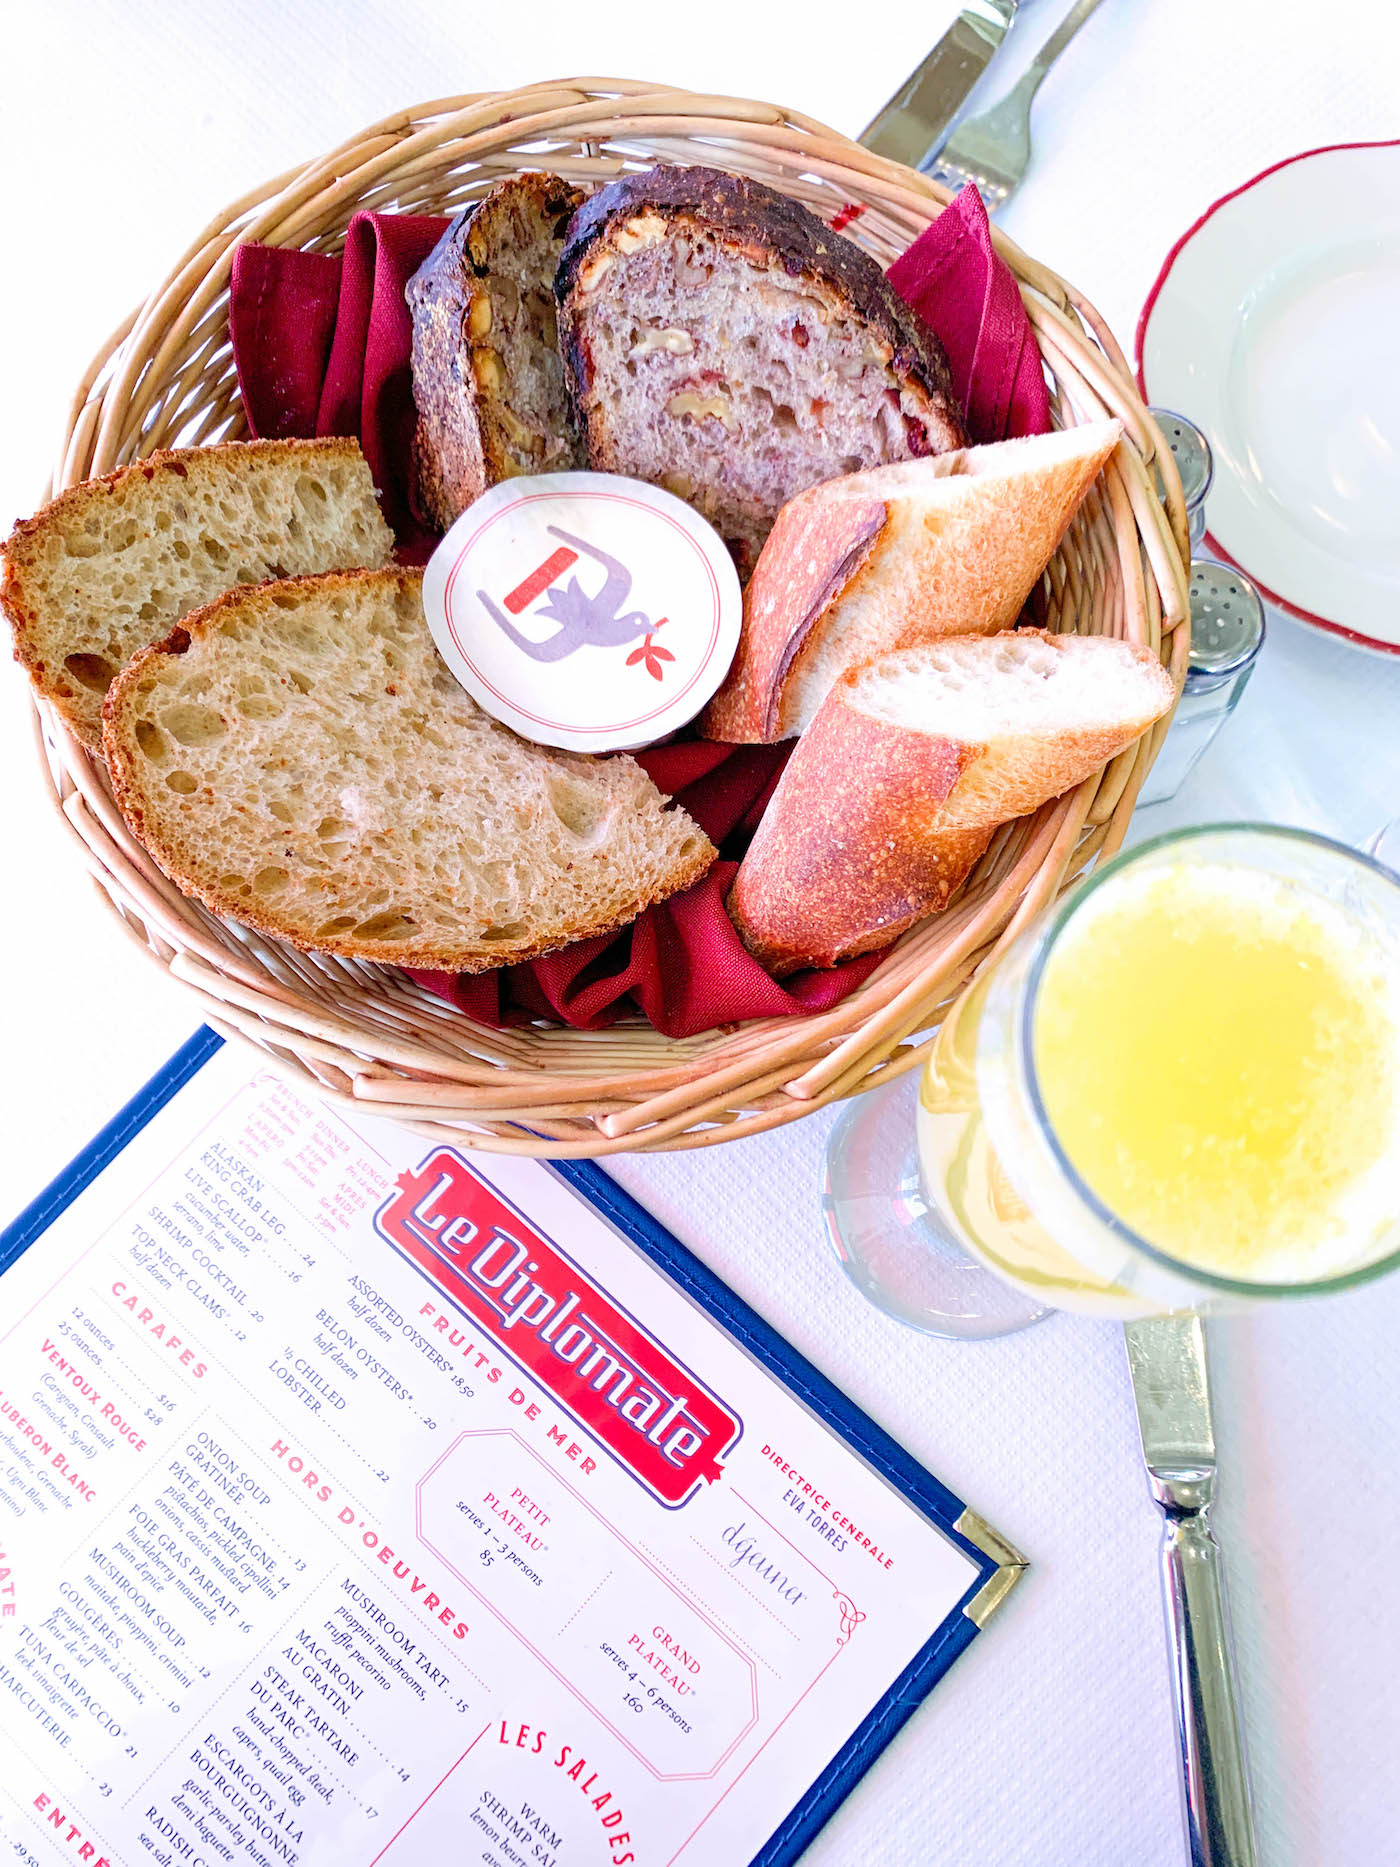 le diplomate dc review